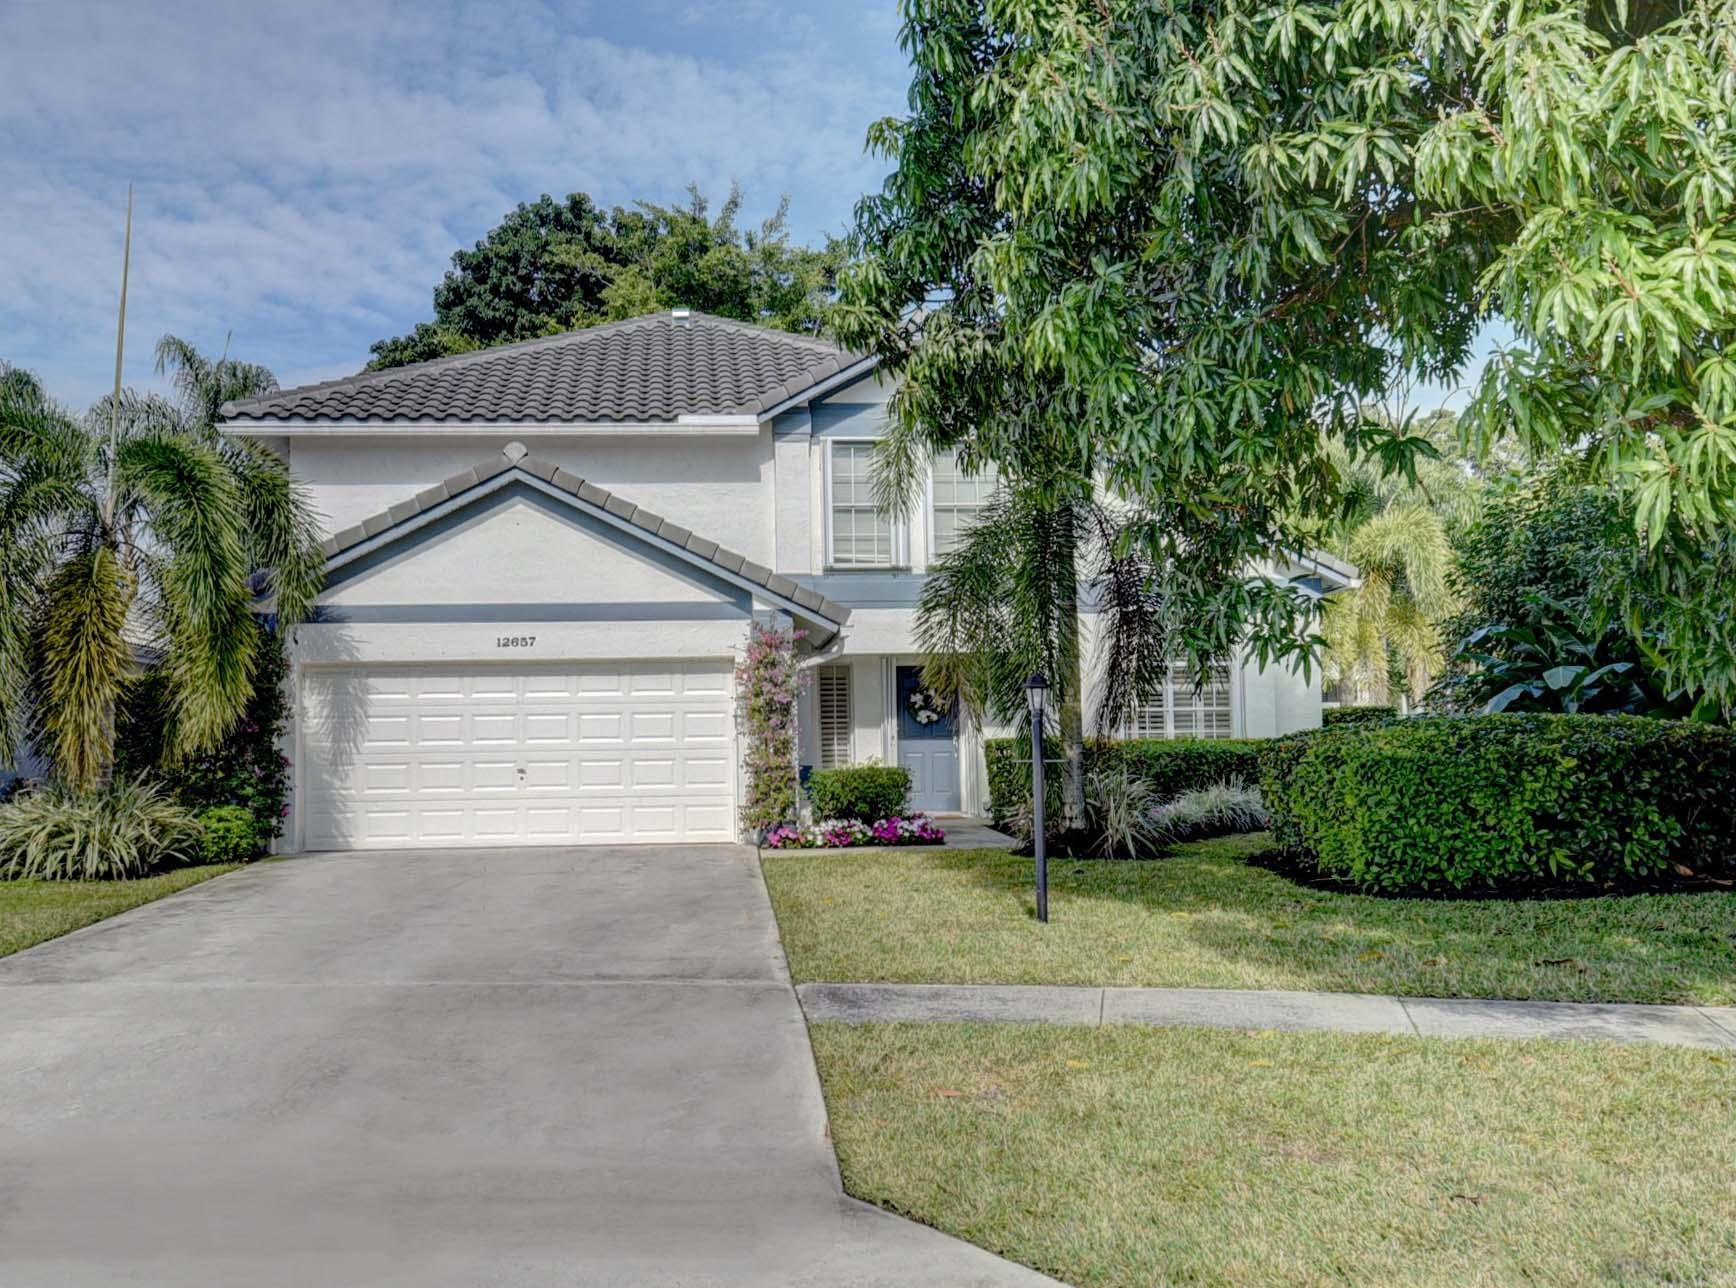 Home for sale in Lake Point Wellington Florida